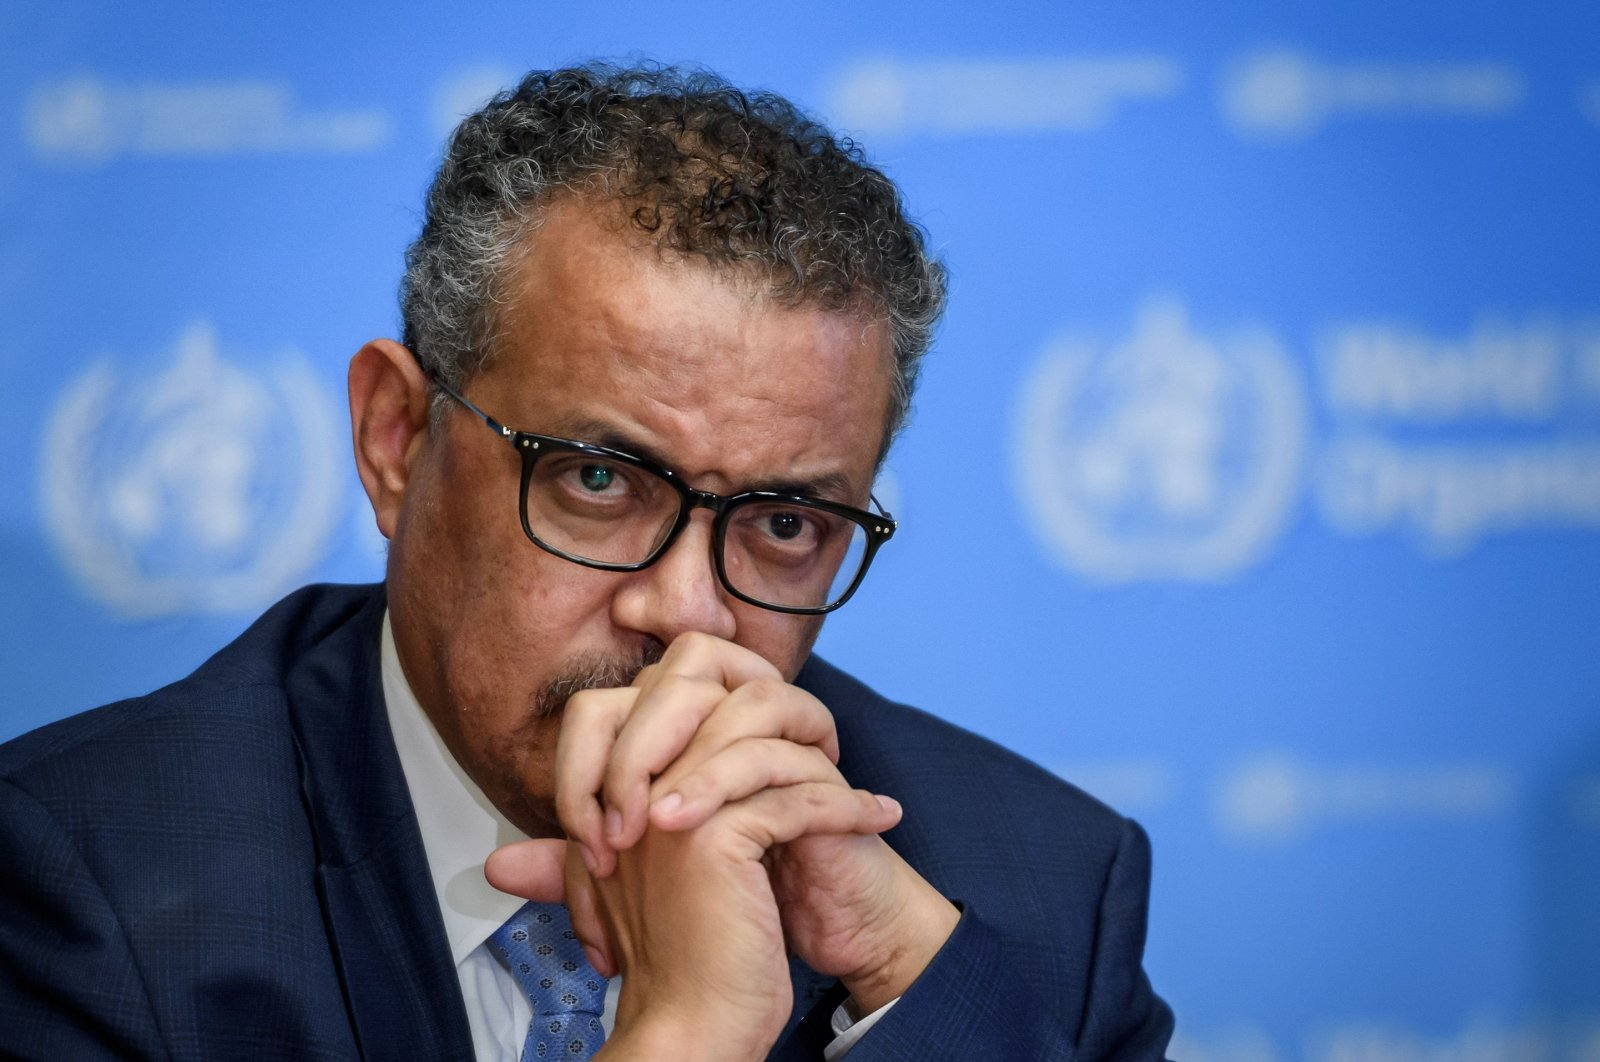 World Health Organization (WHO) Director-General Tedros Adhanom Ghebreyesus attends a daily press briefing on the coronavirus pandemic, at the WHO headquarters in Geneva, on March 2, 2020. (AFP Photo)